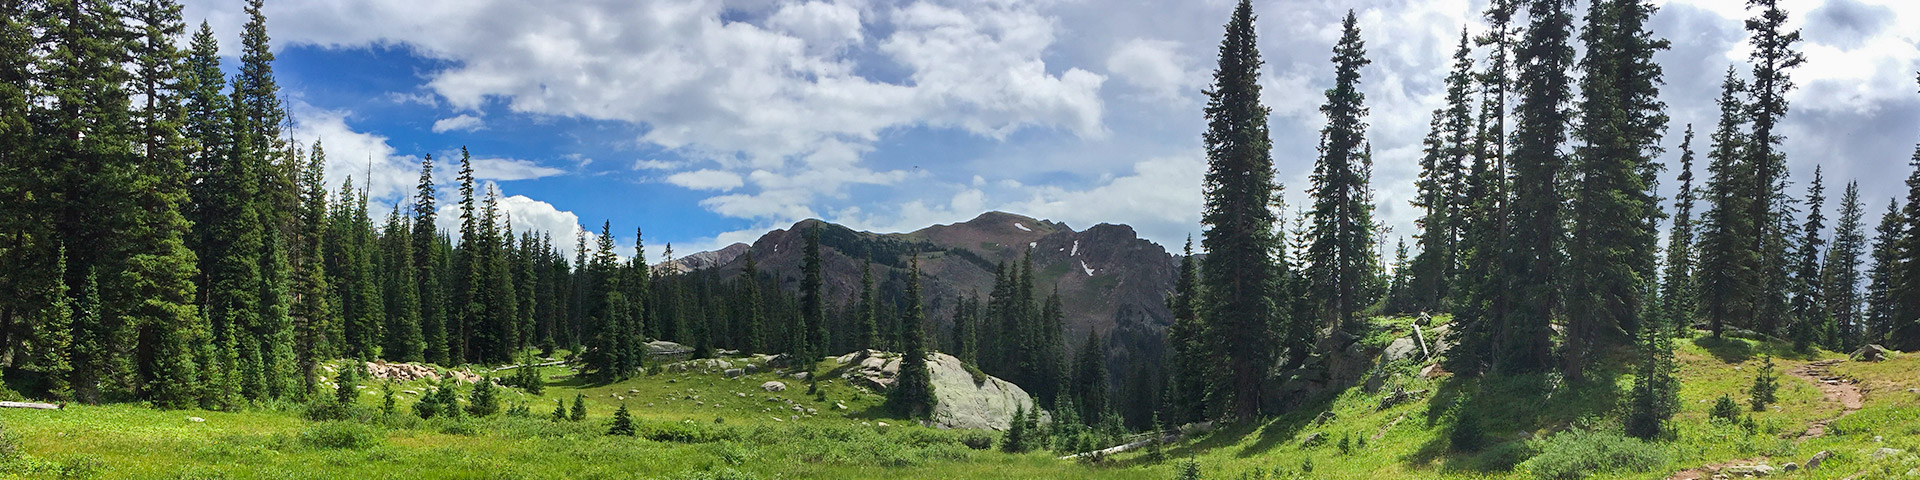 Panorama from the Gore Lake Trail hike near Vail, Colorado